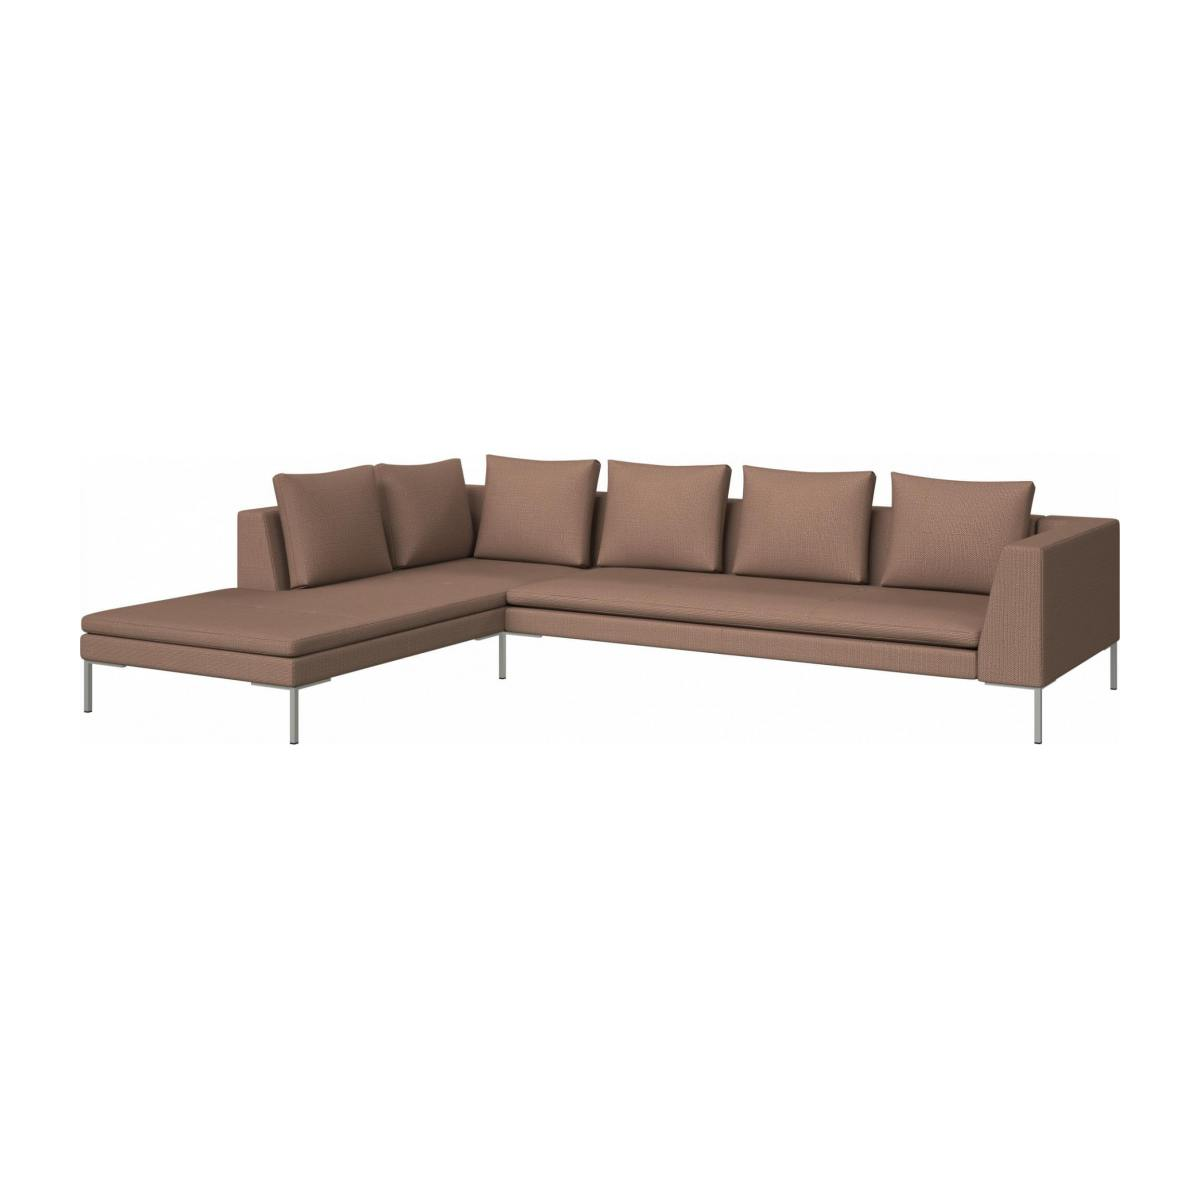 3 seater sofa with chaise longue on the left in Fasoli fabric, jatoba brown  n°2